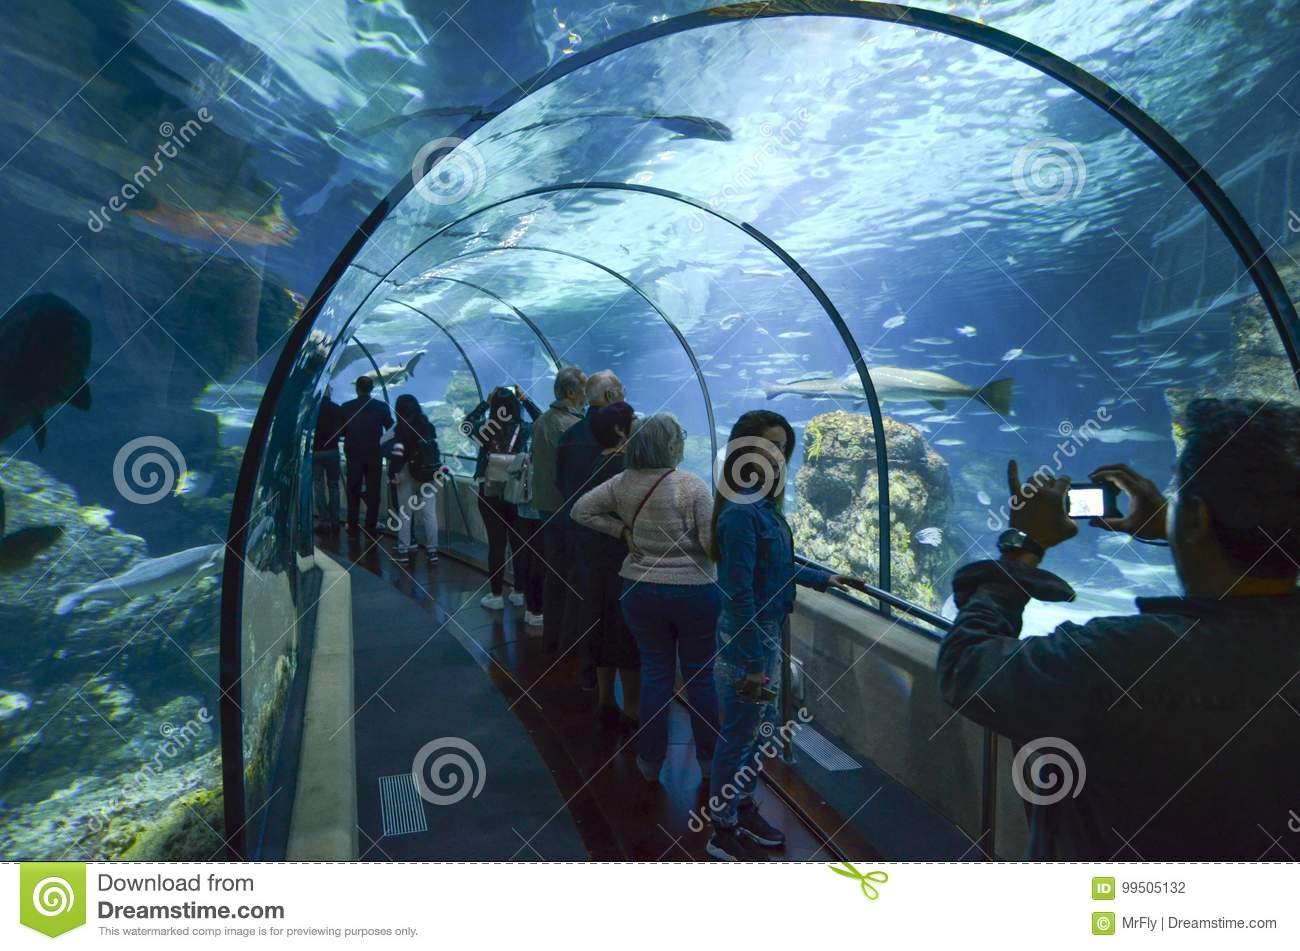 Aquarium de Barcelona, Spain